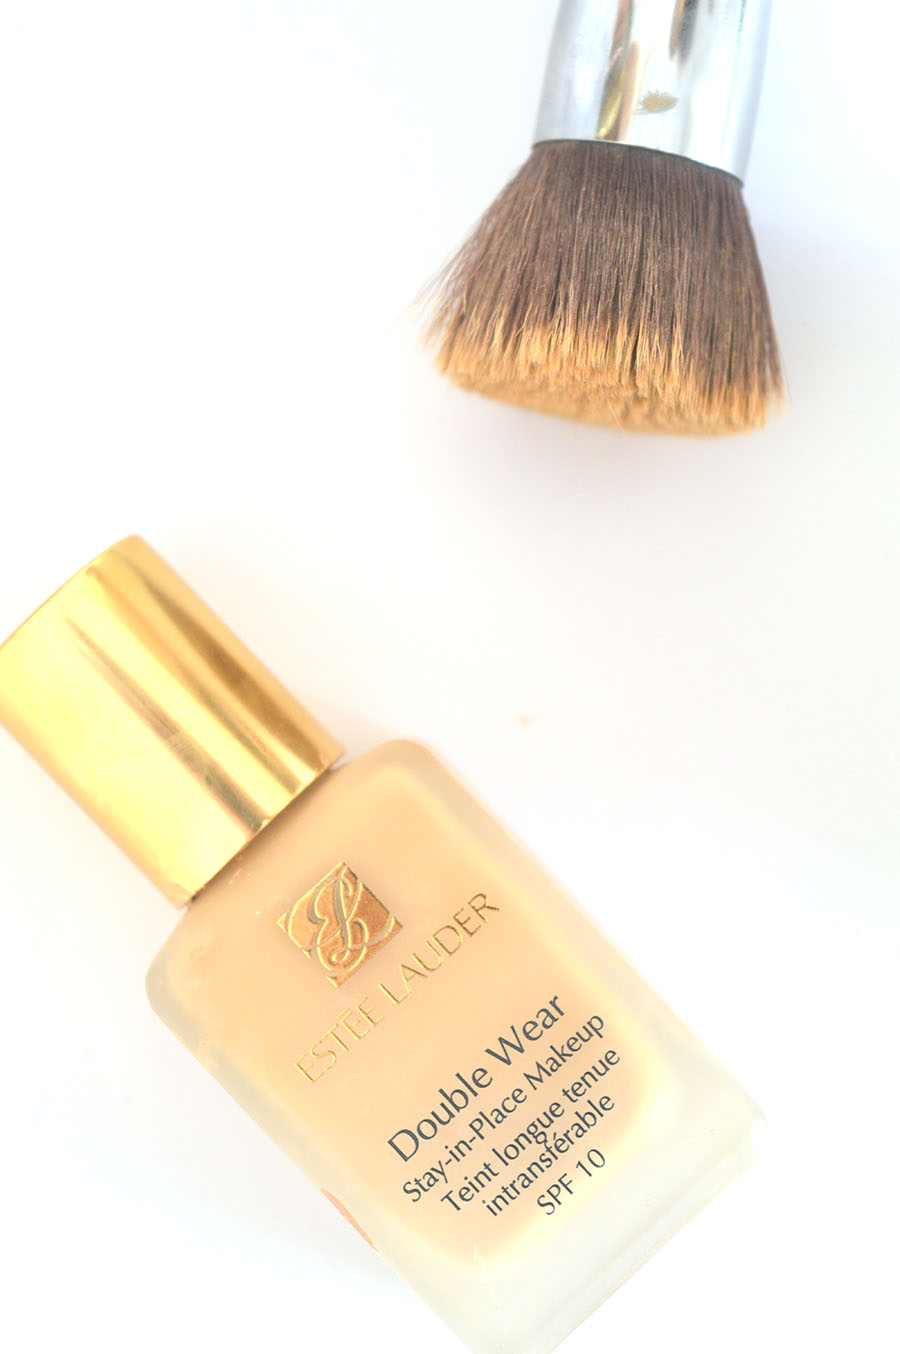 Estee Lauder Double Wear foundation 1W2 sand